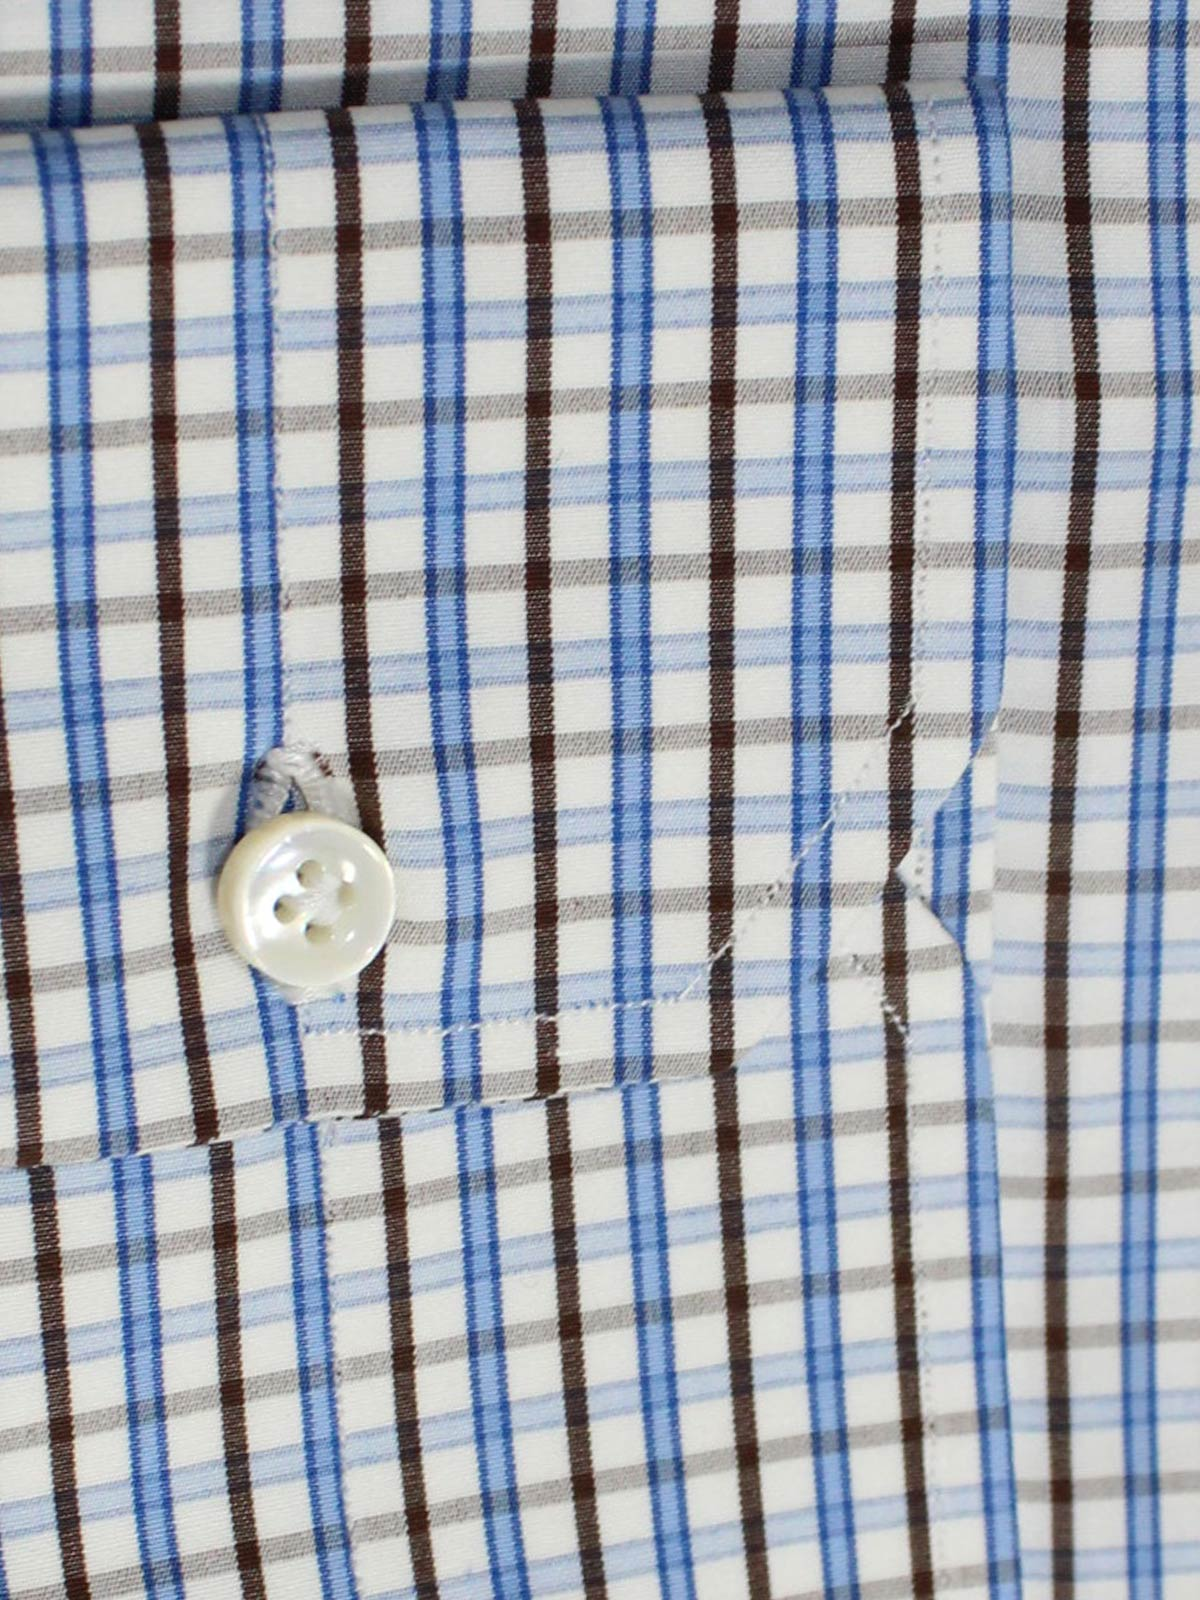 Mattabisch Dress Shirt White Blue Brown Check - Sartorial Shirt 42 - 16 1/2 REDUCED - SALE